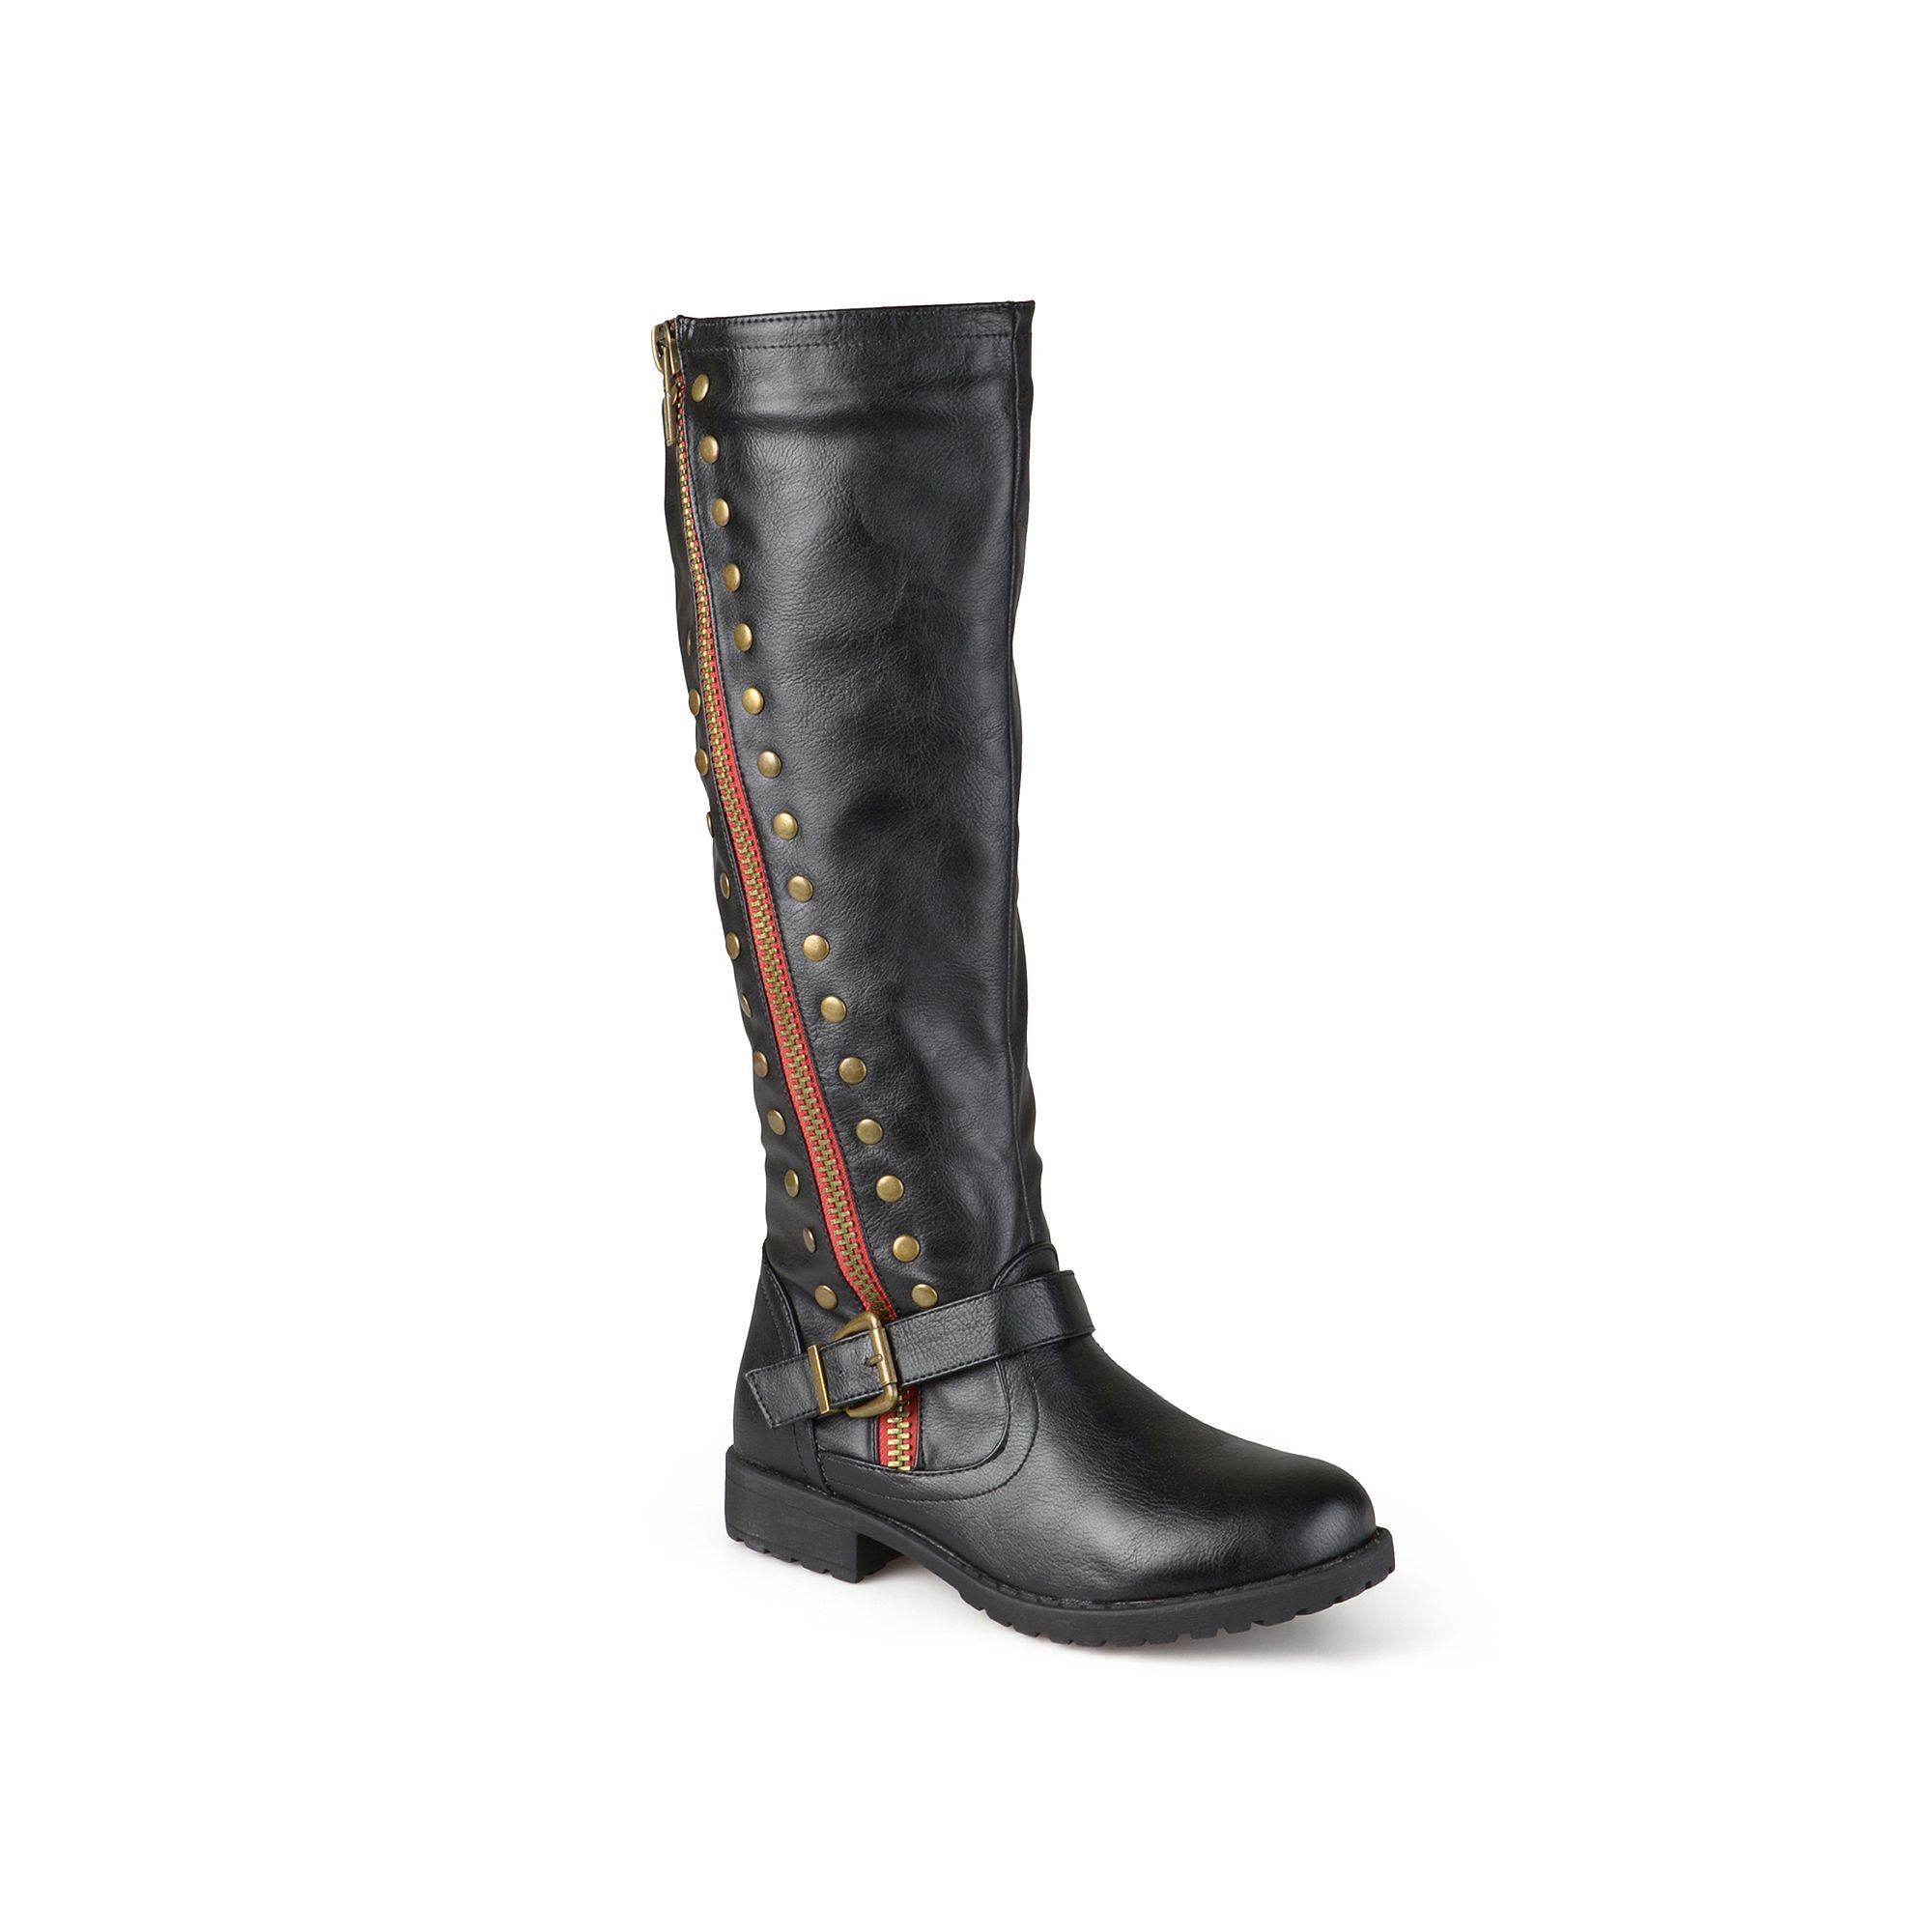 Journee Collection Women's ... Studded Knee-High Riding Boots 5t6aRP